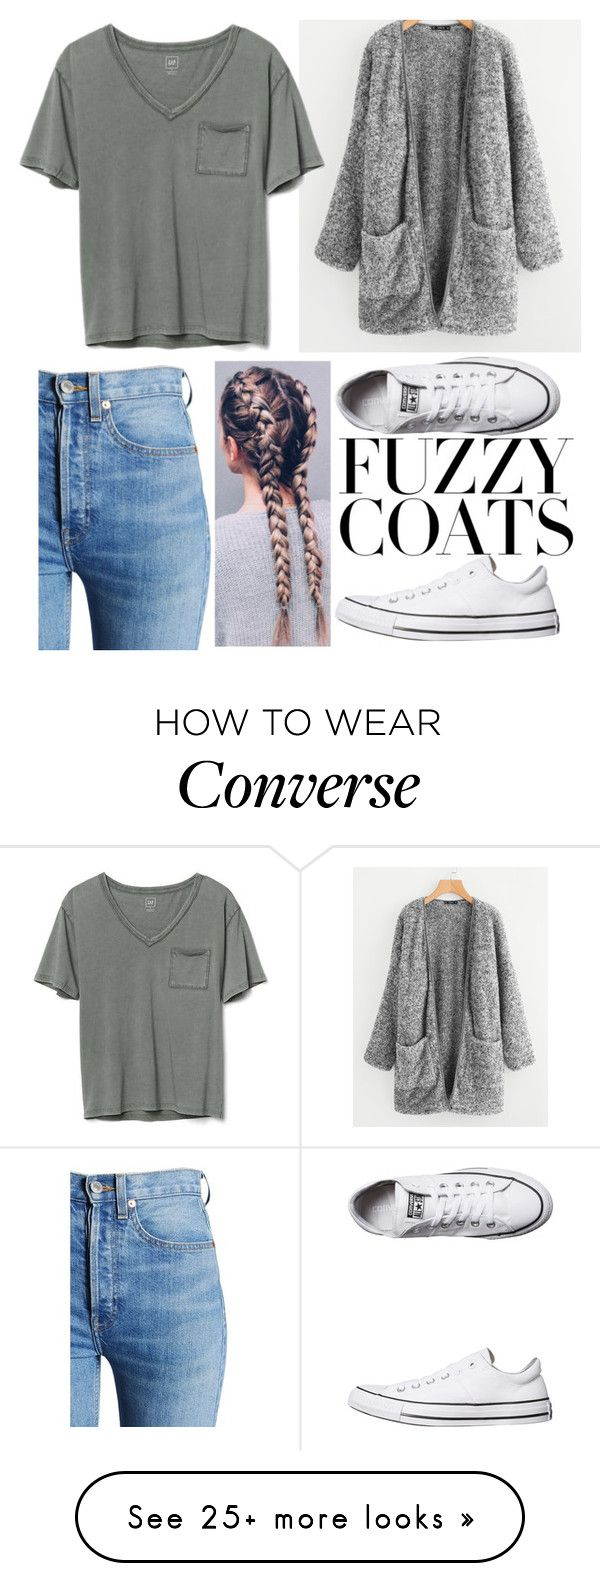 """Fuzzy Coats"" by ginabartel on Polyvore featuring RE/DONE, Gap and Converse"